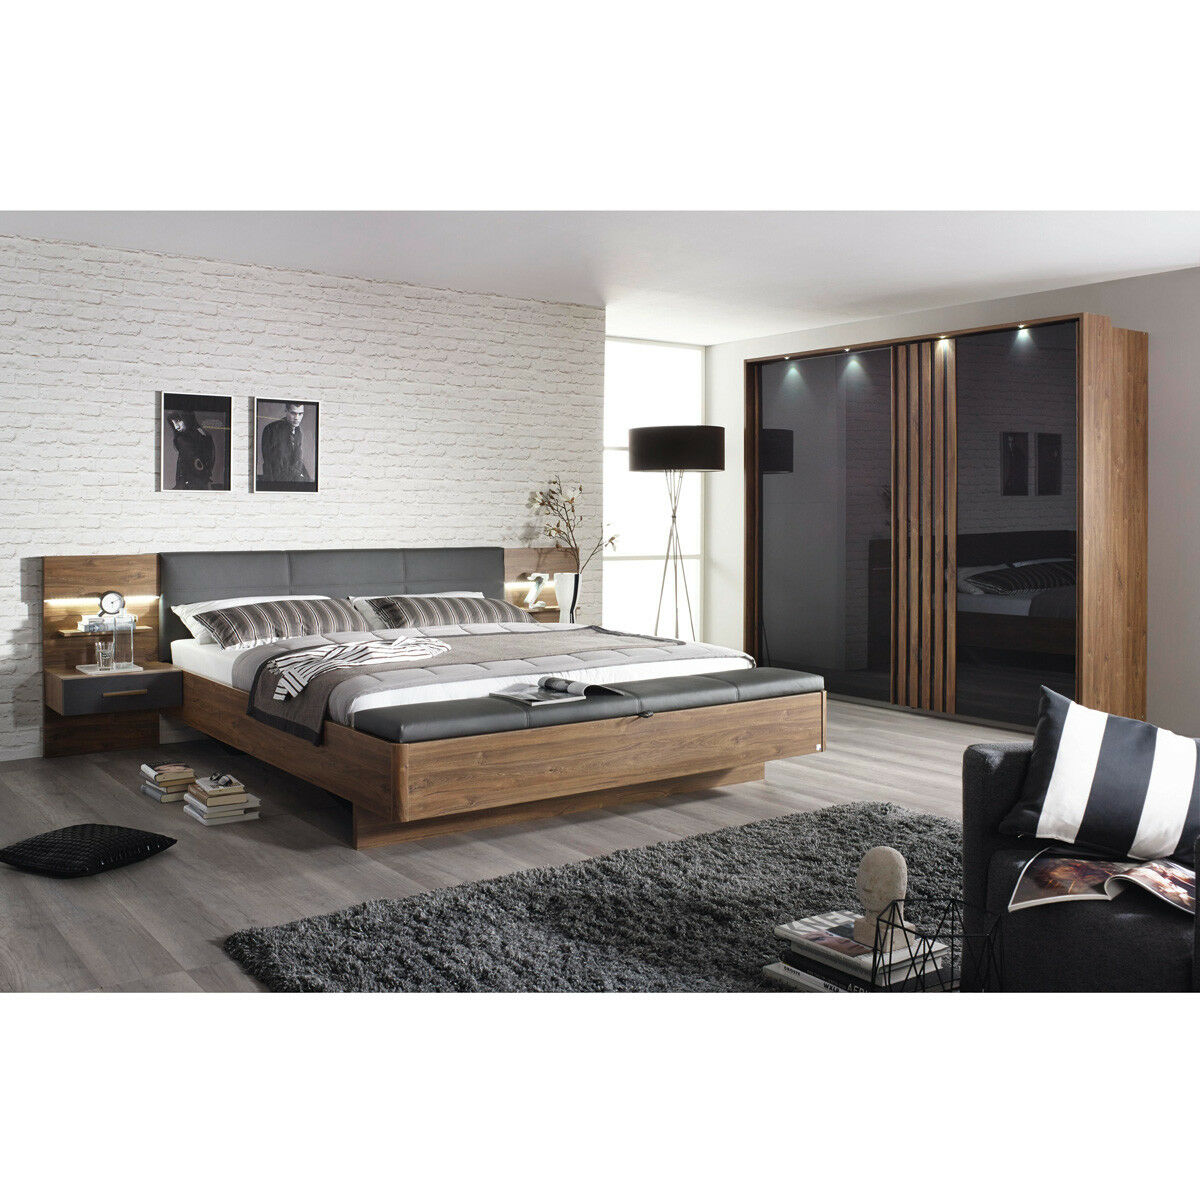 schlafzimmer set 2 mosbach bett schrank in eiche stirling grau und basalt led eur. Black Bedroom Furniture Sets. Home Design Ideas